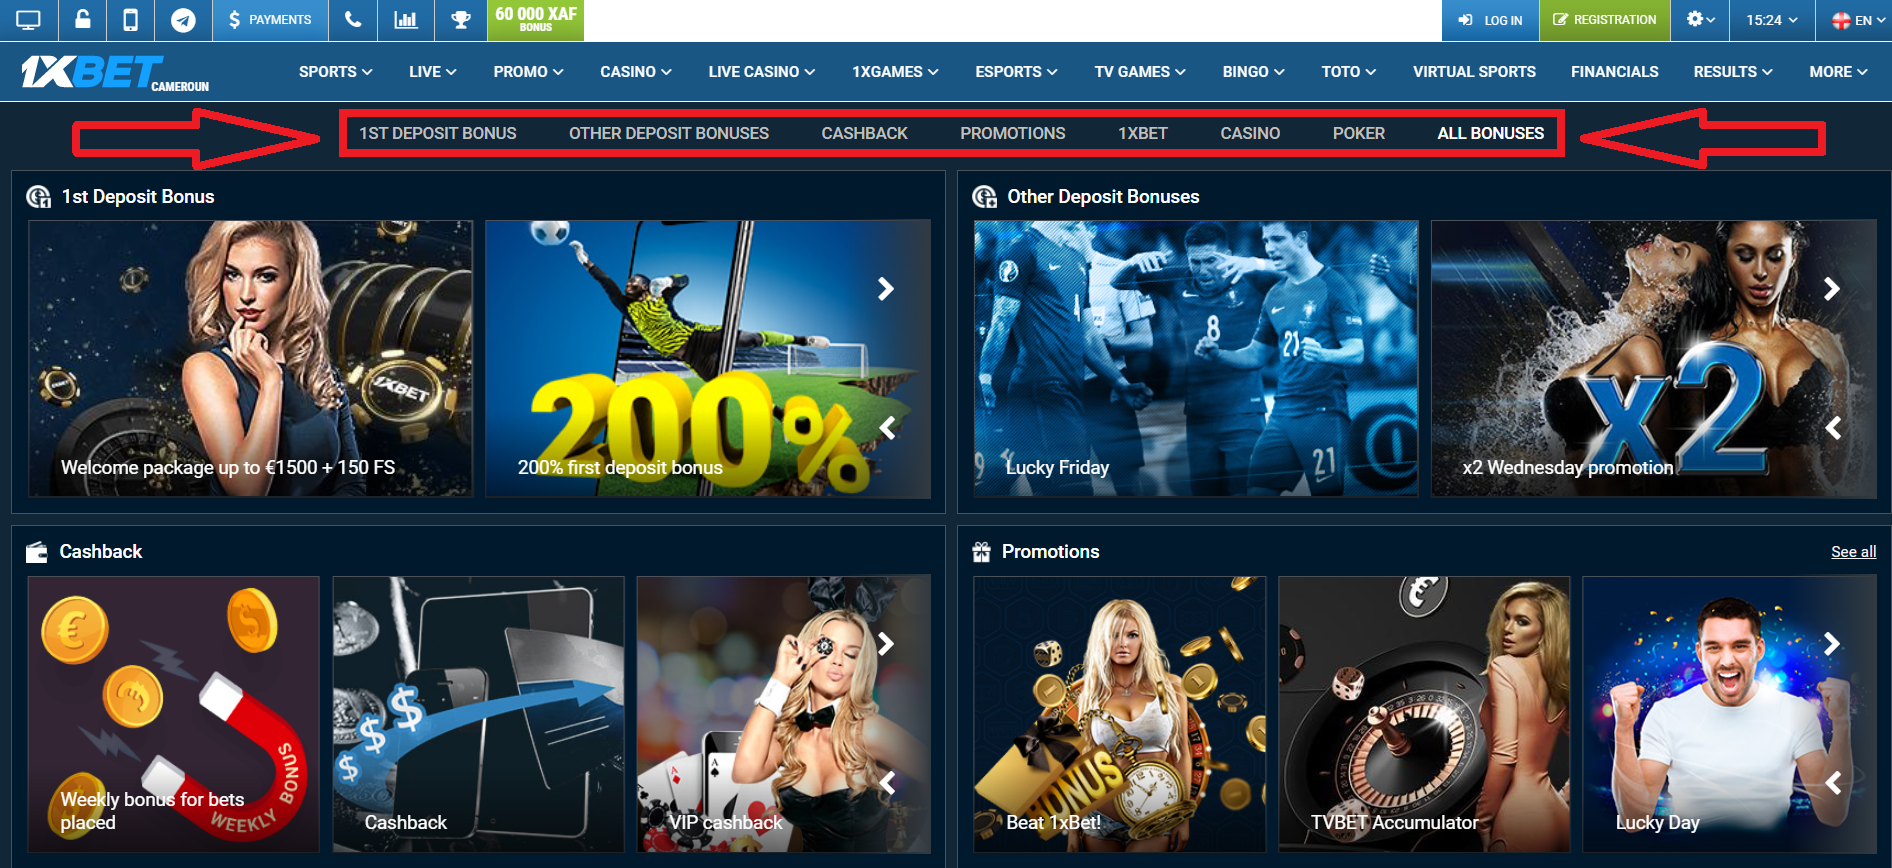 Features of the coupon code from the 1xBet company